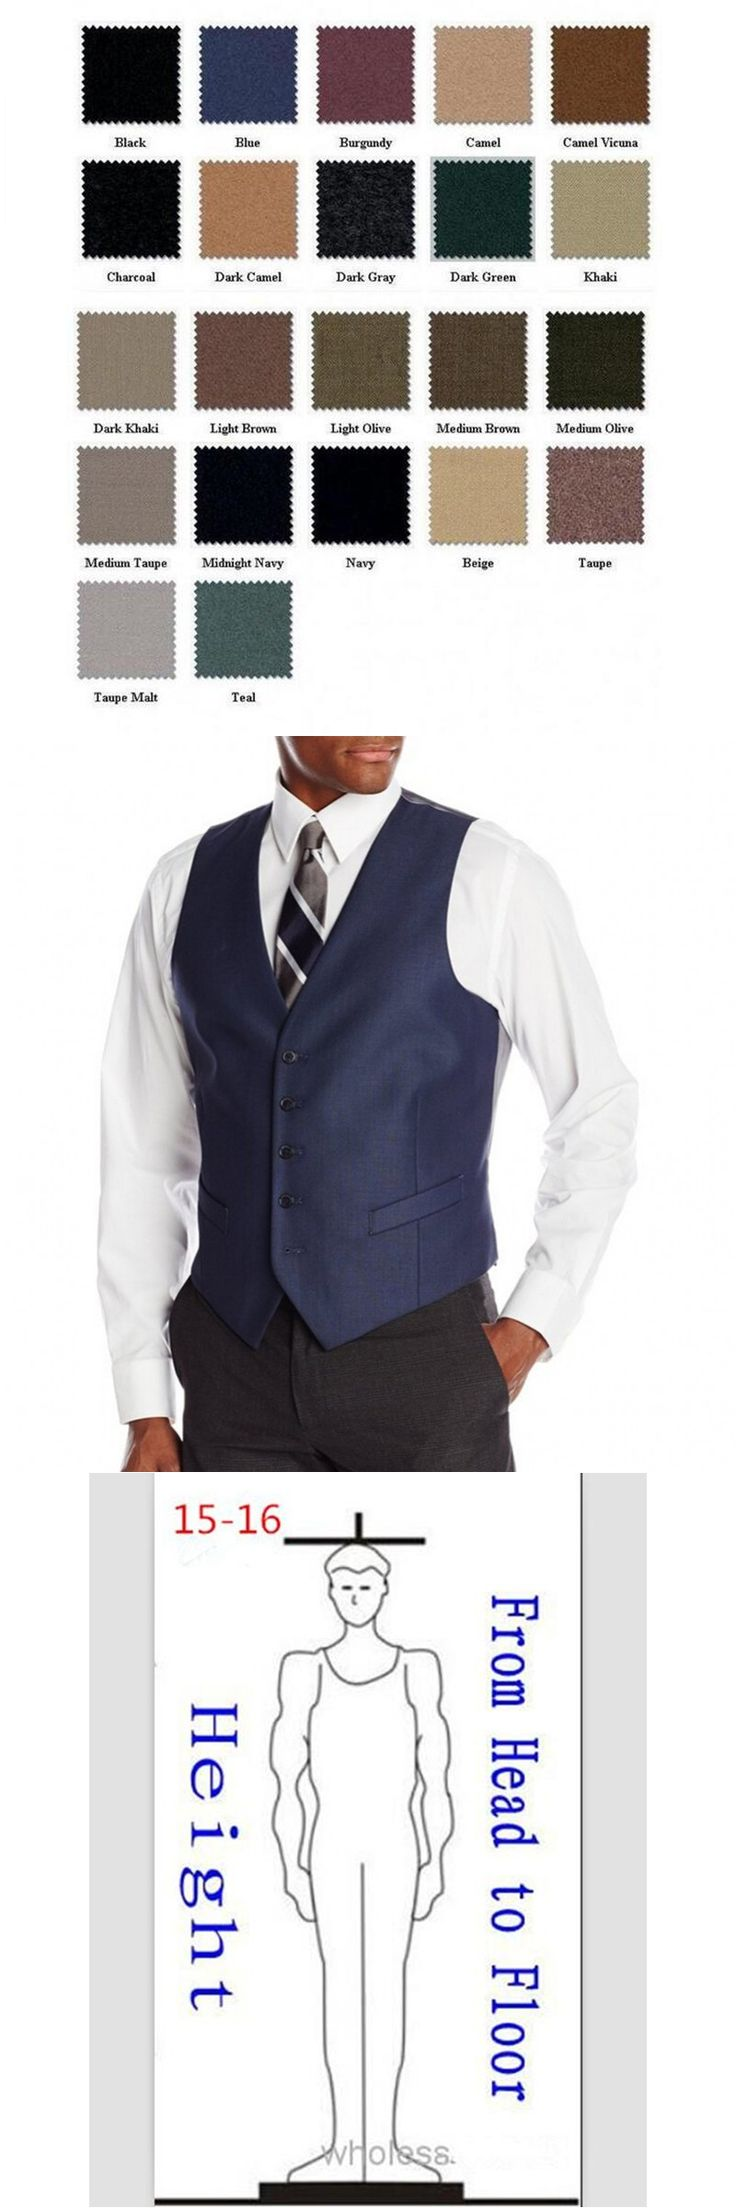 New High Quality Men's Business Suit Slim Formal Casual Waistcoat Black Navy Blue Vest Fit Suits Wedding Costumes